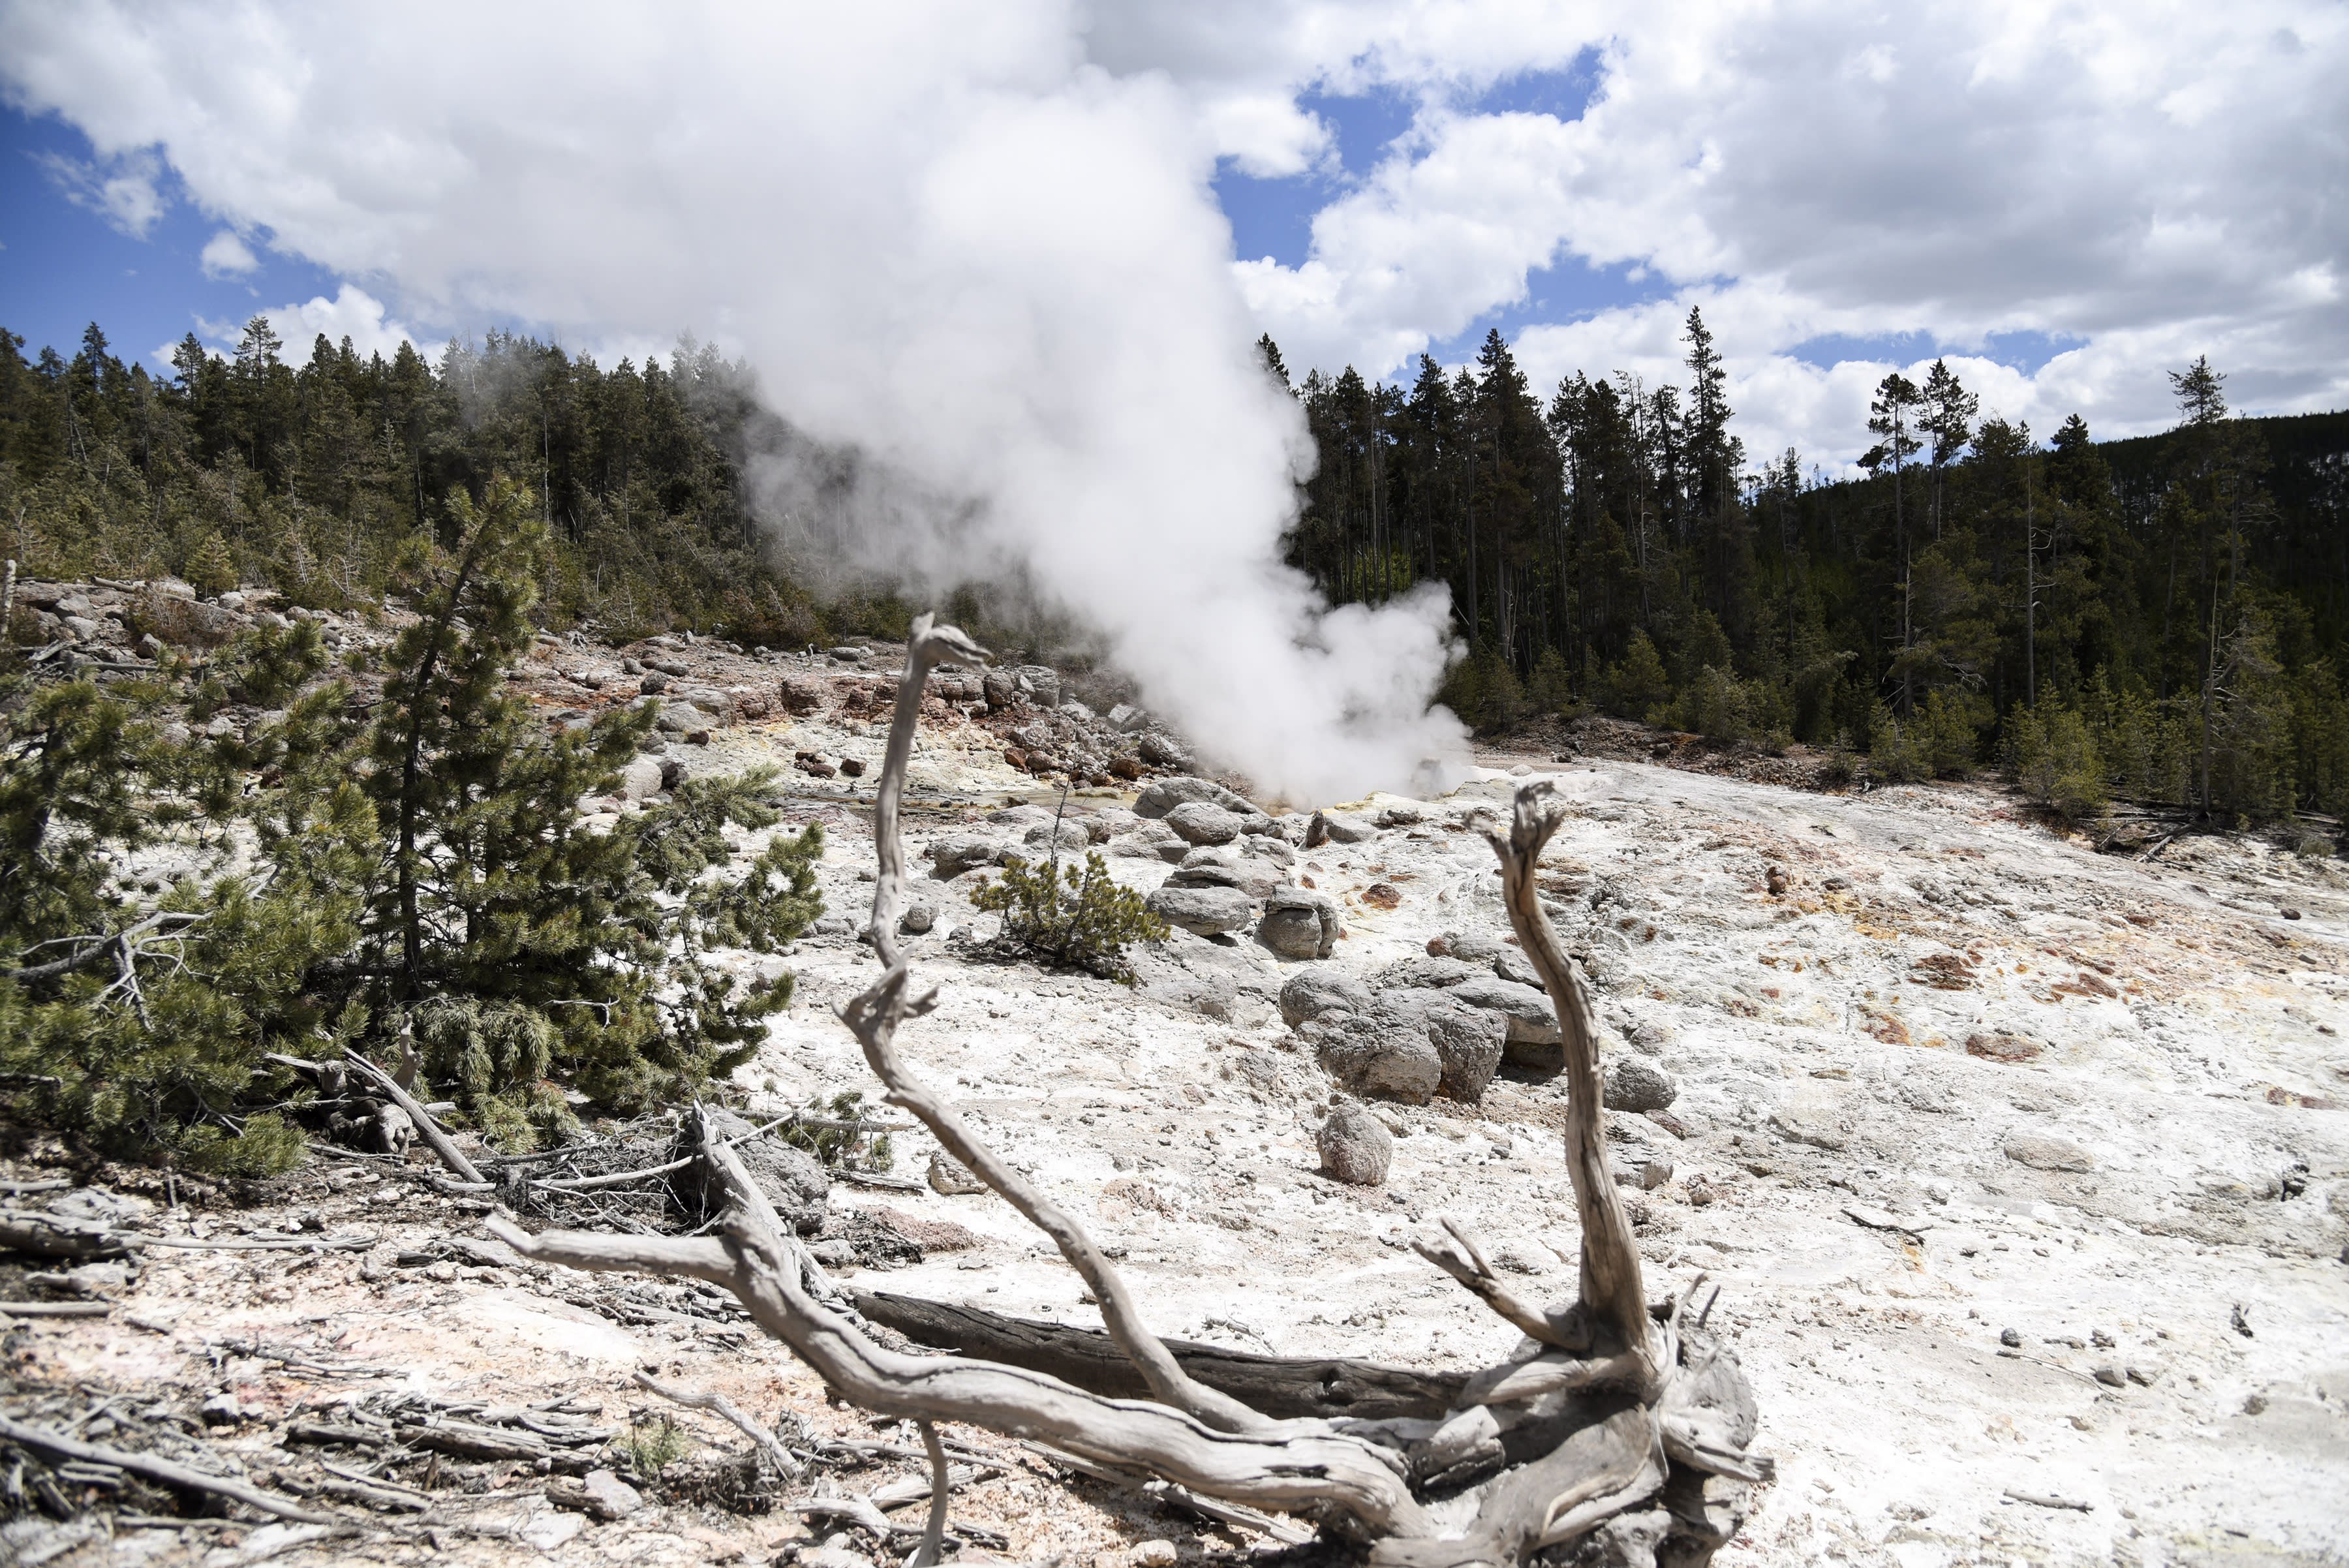 FILE - This May 15, 2018 file photo, shows Steamboat Geyser emitting a small jet of steam in Yellowstone National Park. A thermal spring near Old Faithful in Yellowstone National Park has erupted for the fourth time in the last 60 years, a park official said Thursday, Sept. 20. (Rachel Leathe /Bozeman Daily Chronicle via AP, File)